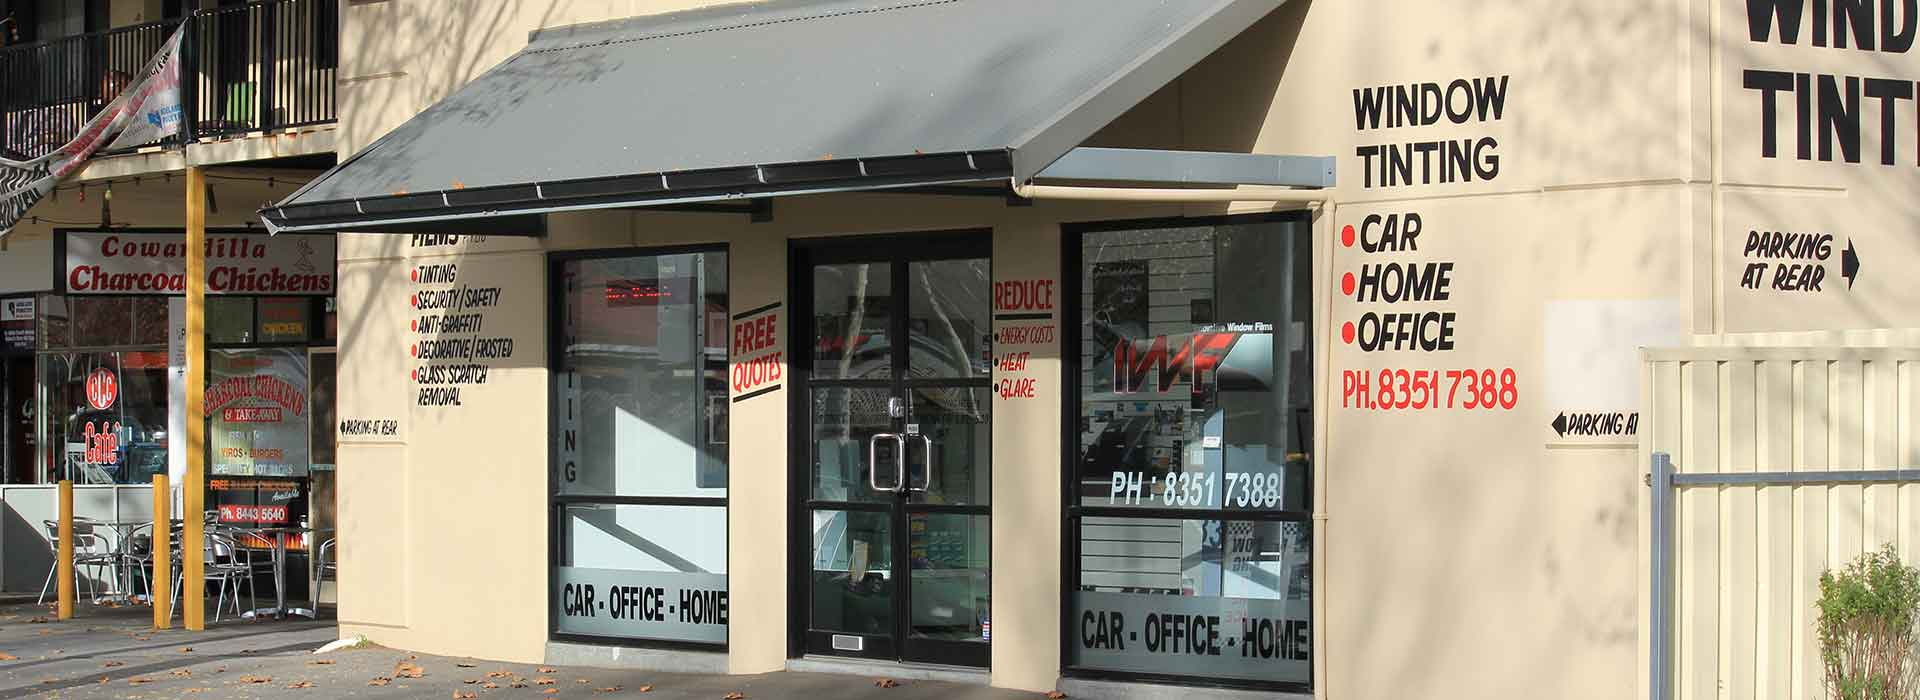 Car Window Tinting Specialists Adelaide